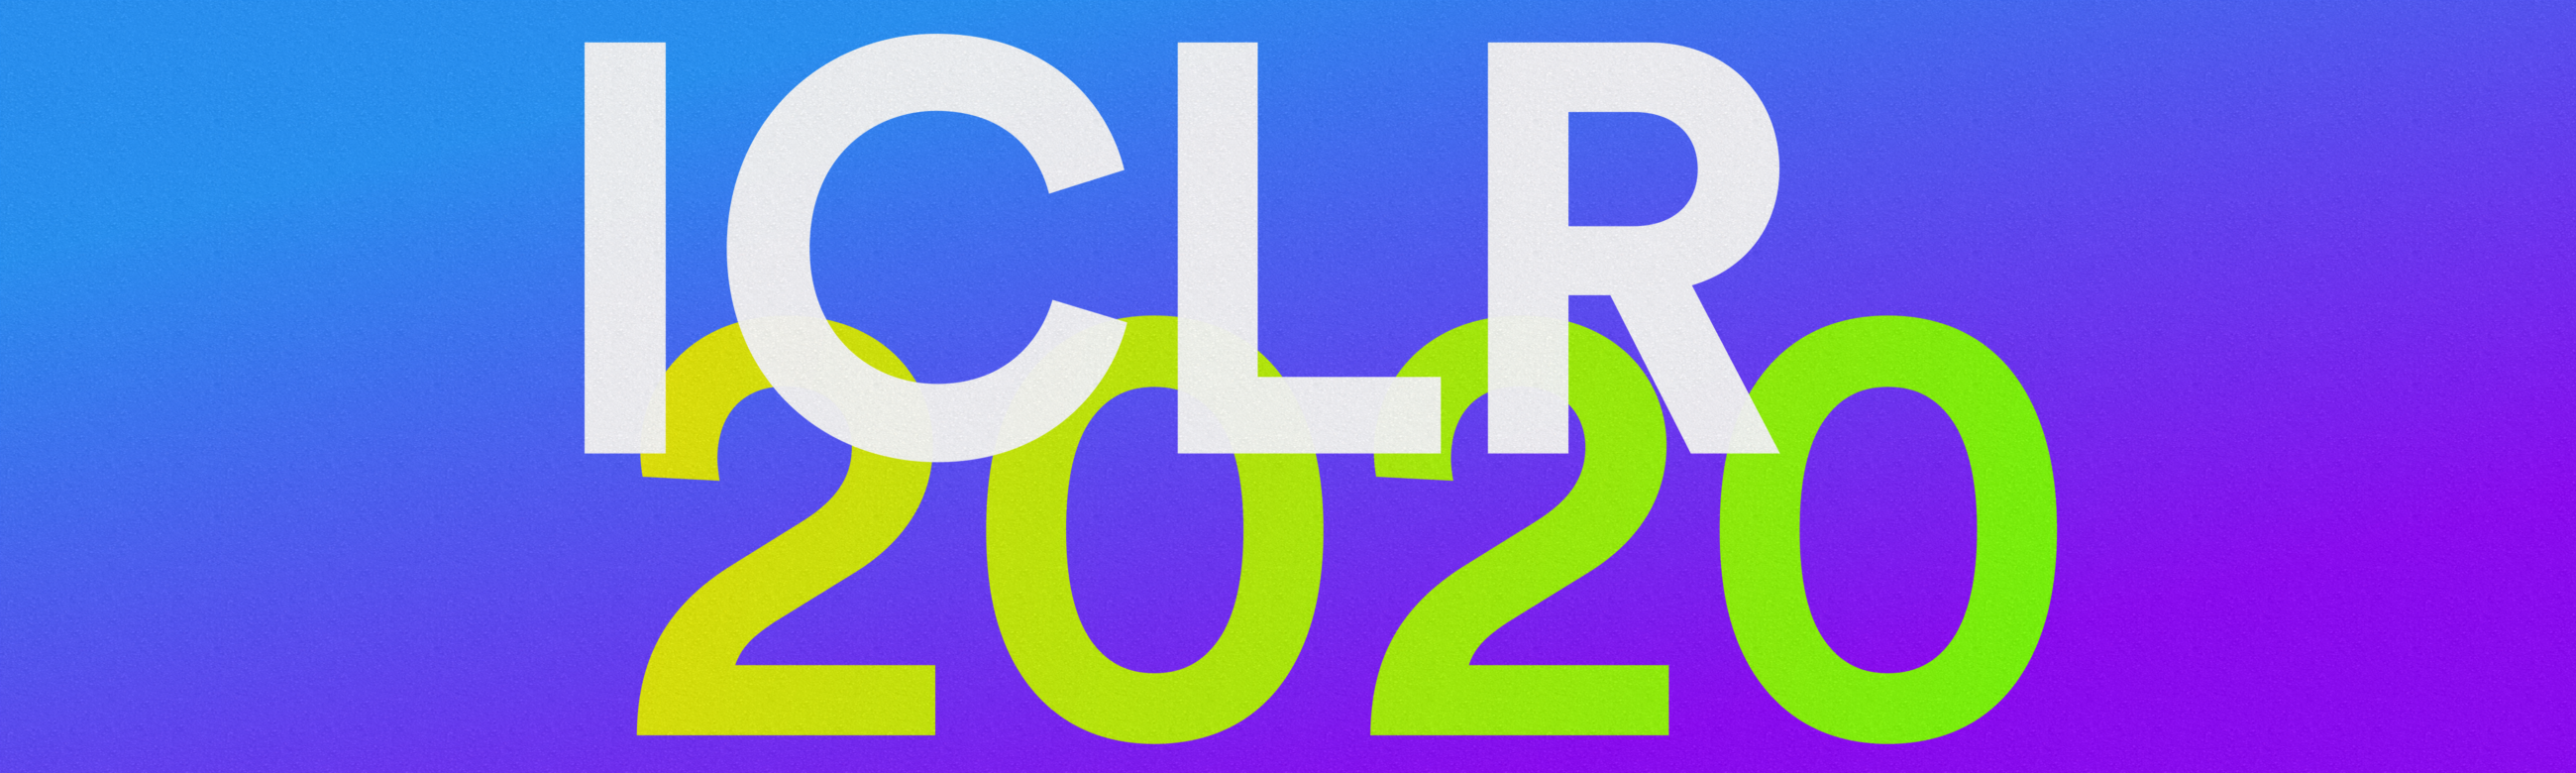 What's new for Transformers at the ICLR 2020 Conference?